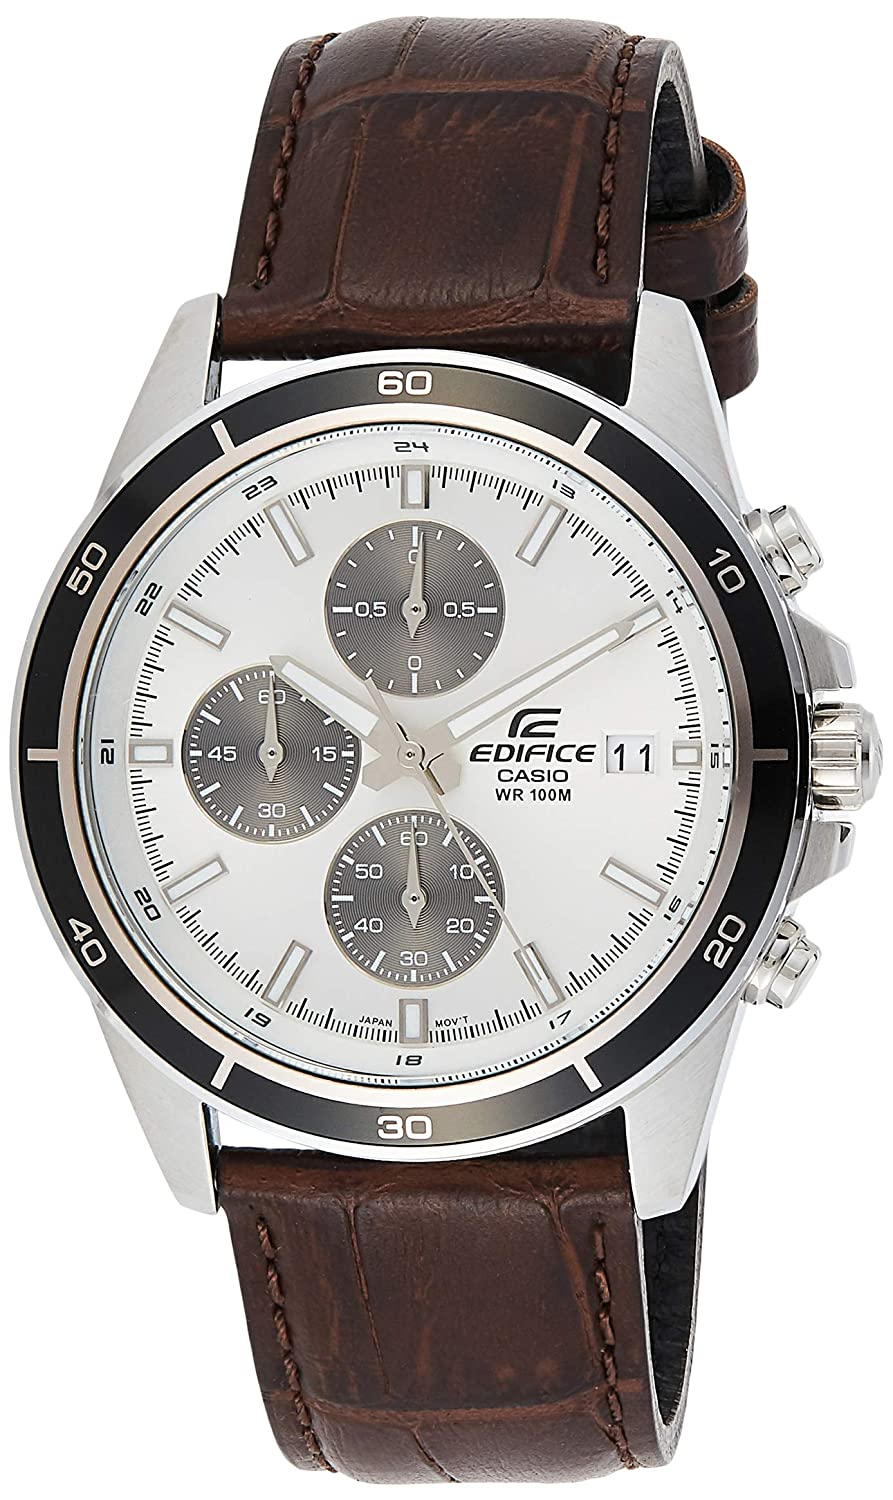 Casio Edifice Chronograph White Dial Men's Watch